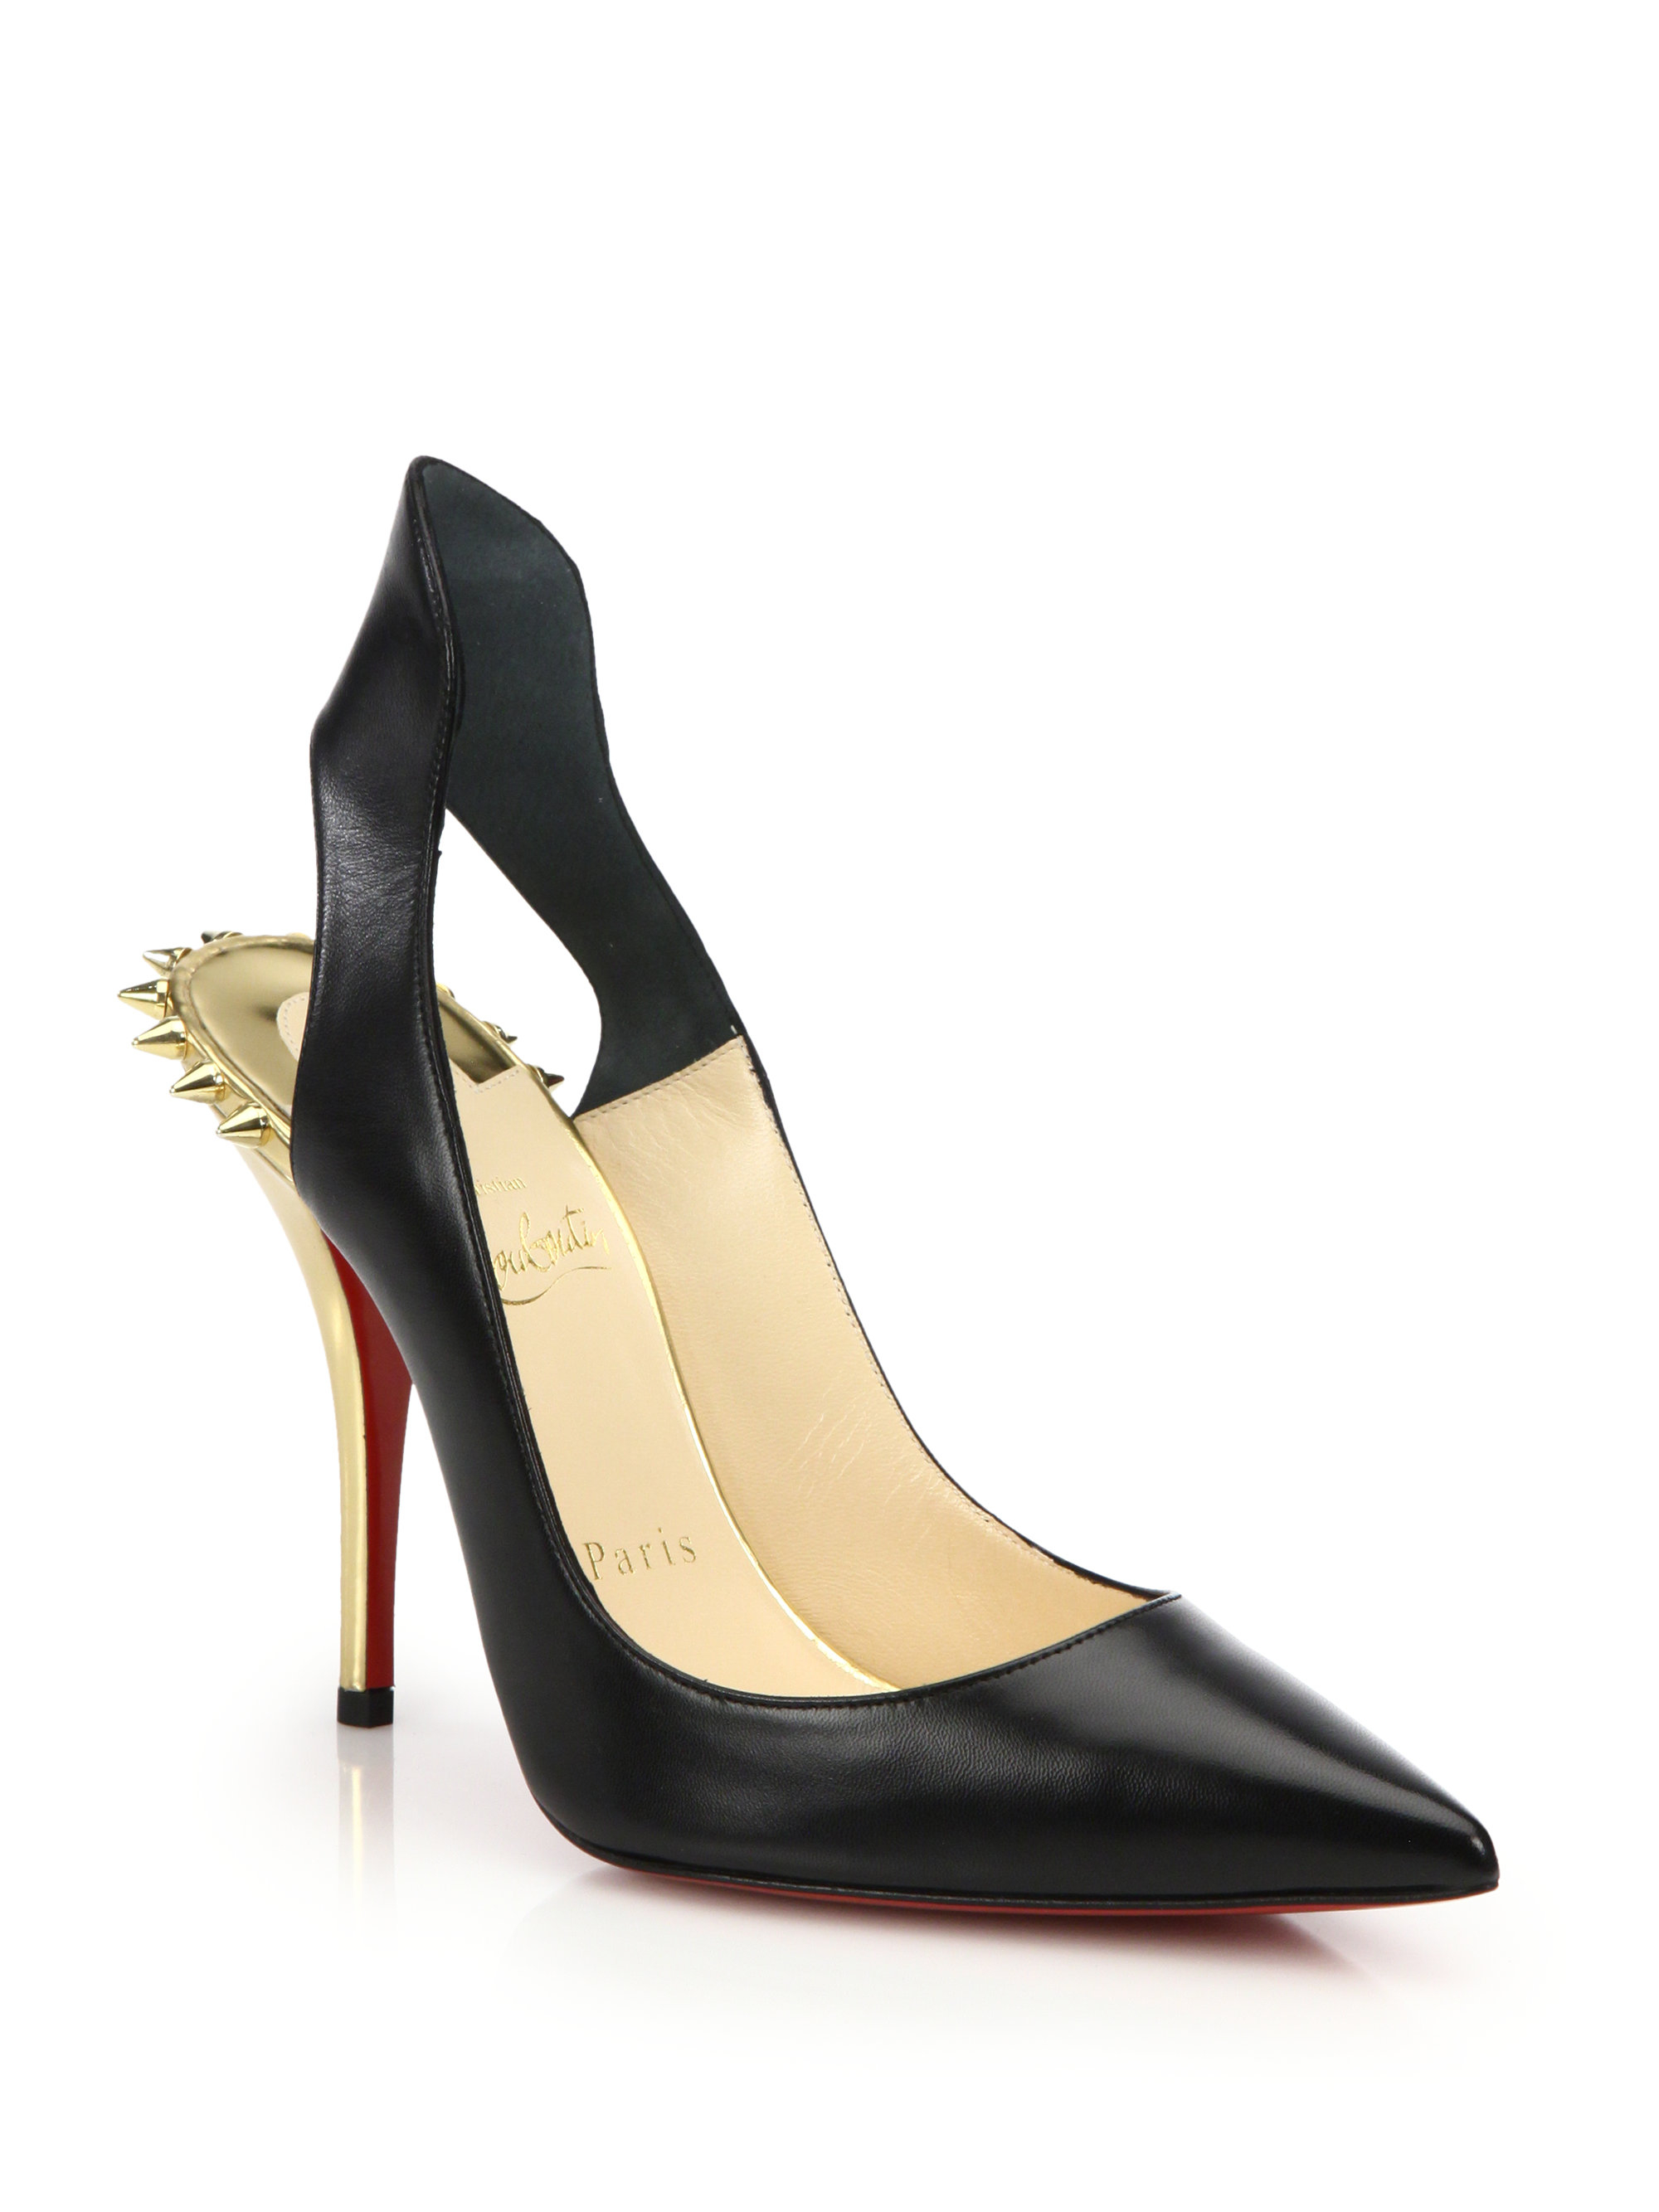 Christian louboutin Survivita Spiked Leather Slingback Pumps in ...